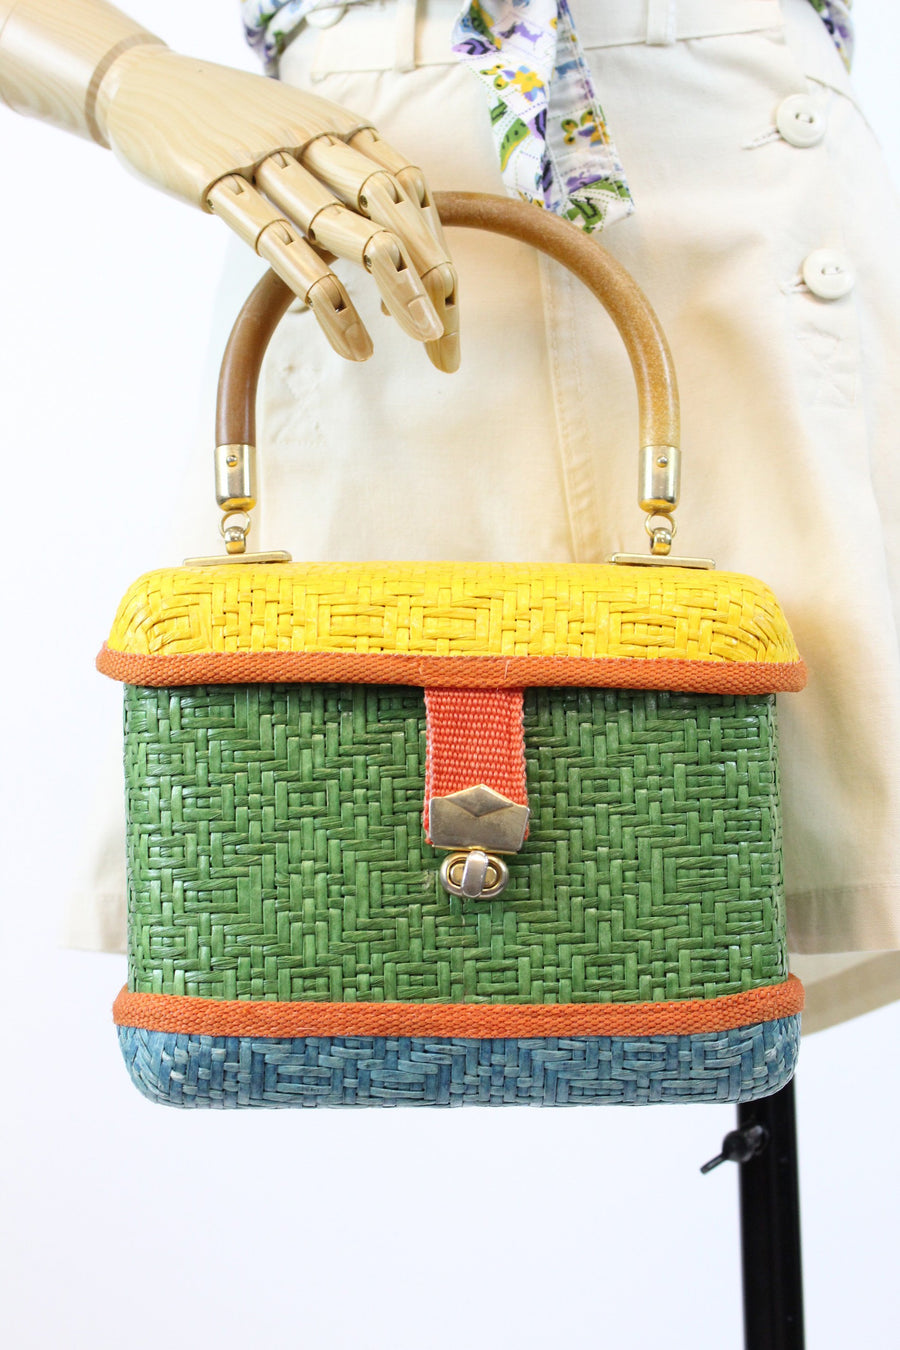 1960s wicker handbag purse | box bag made in italy